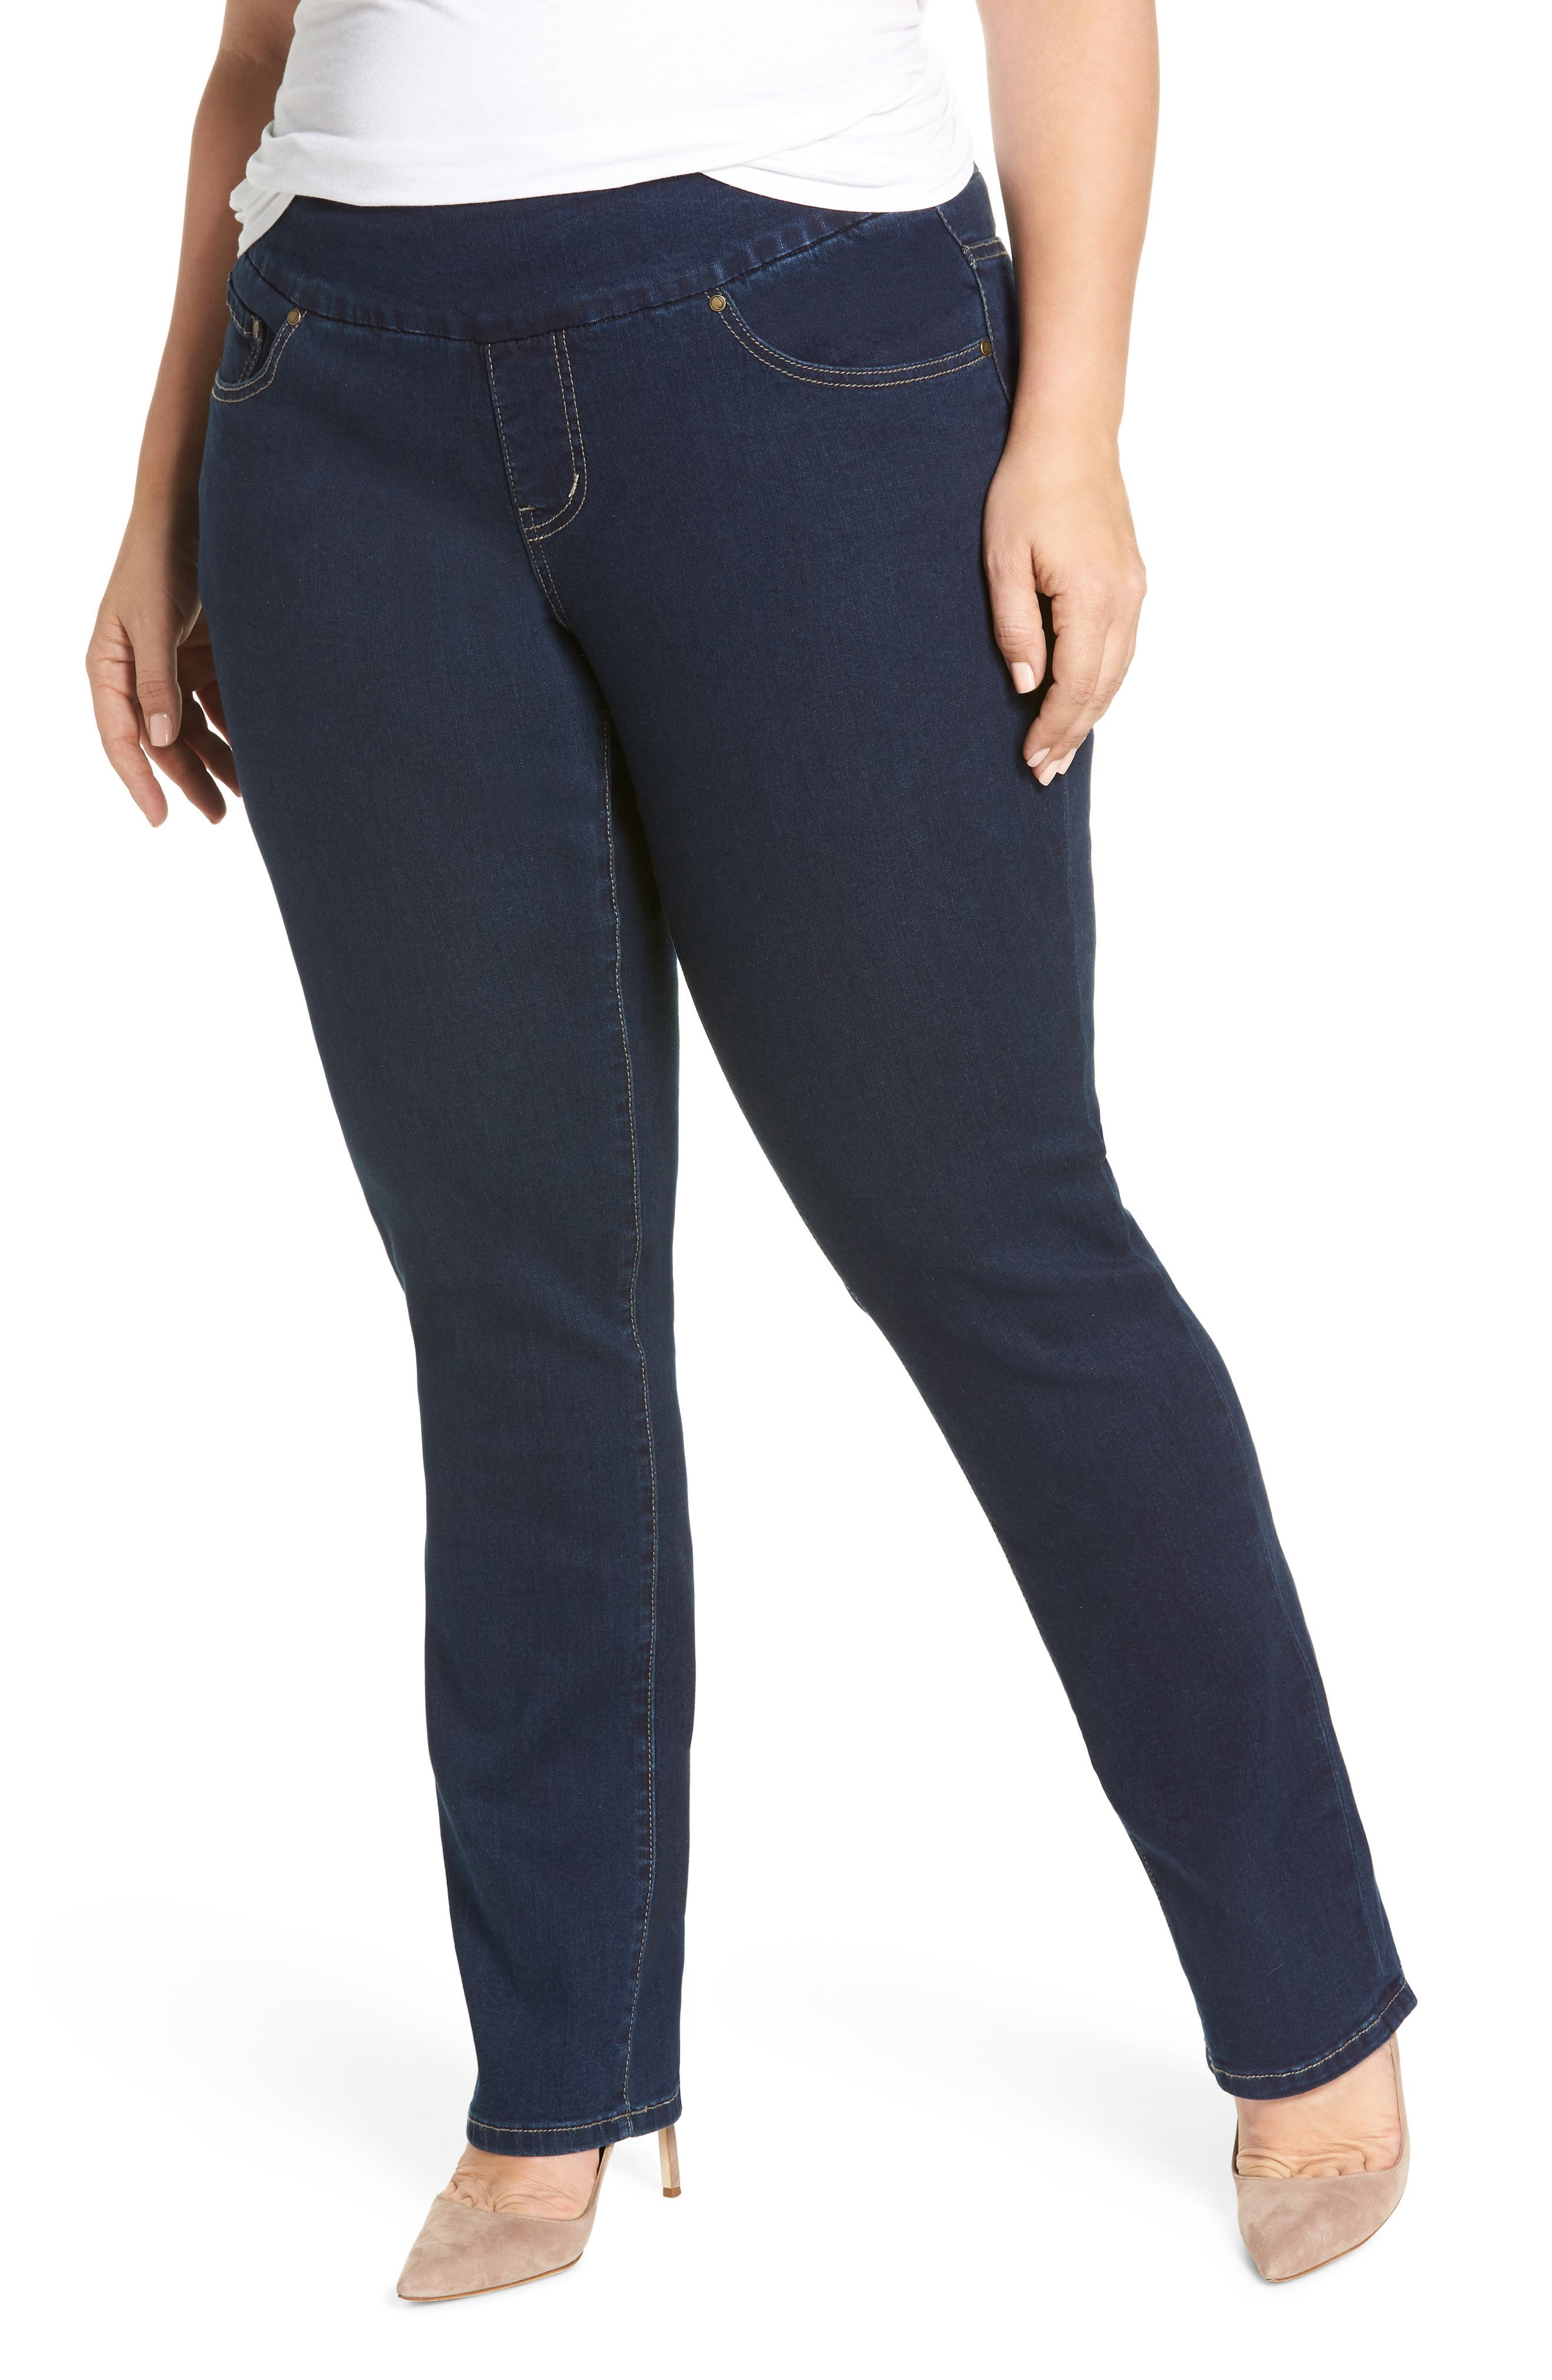 JAG JEANS Paley Pull-On Bootcut Jeans, Main, color, MED INDIGO